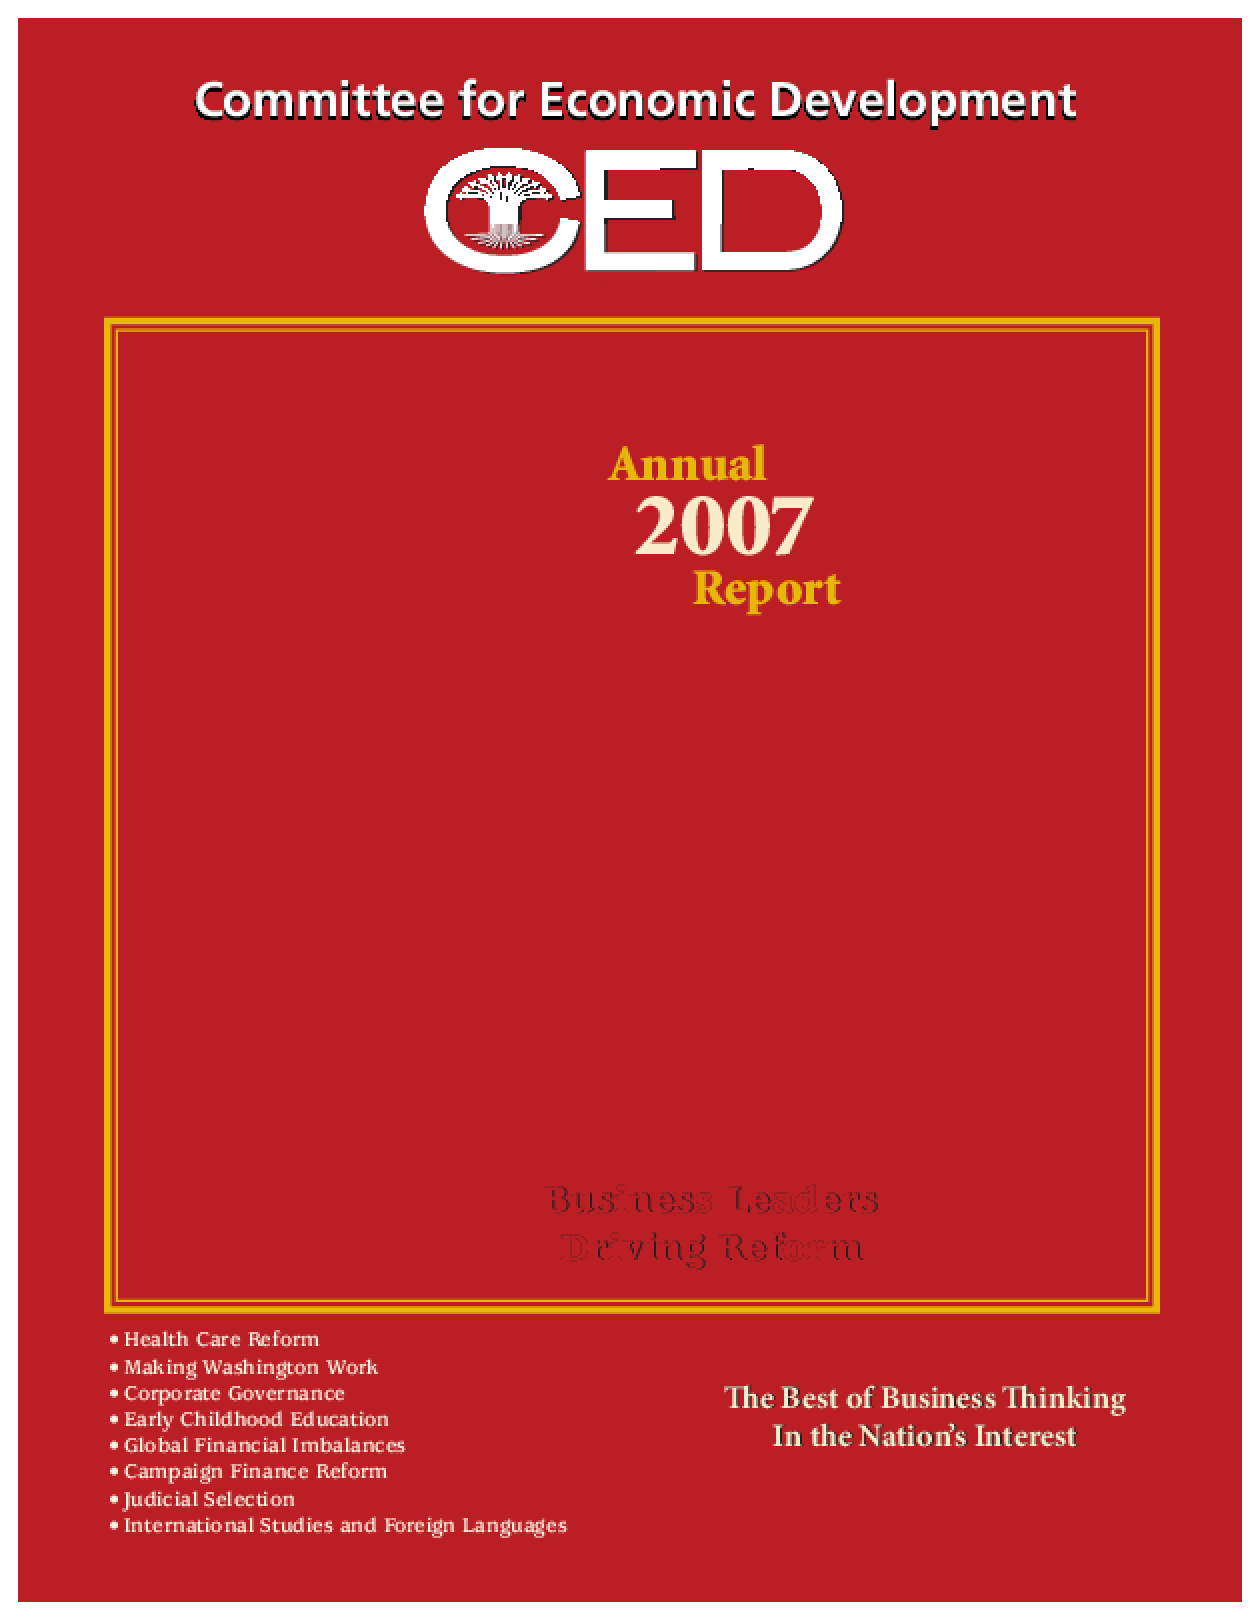 CED's 2007 Annual Report